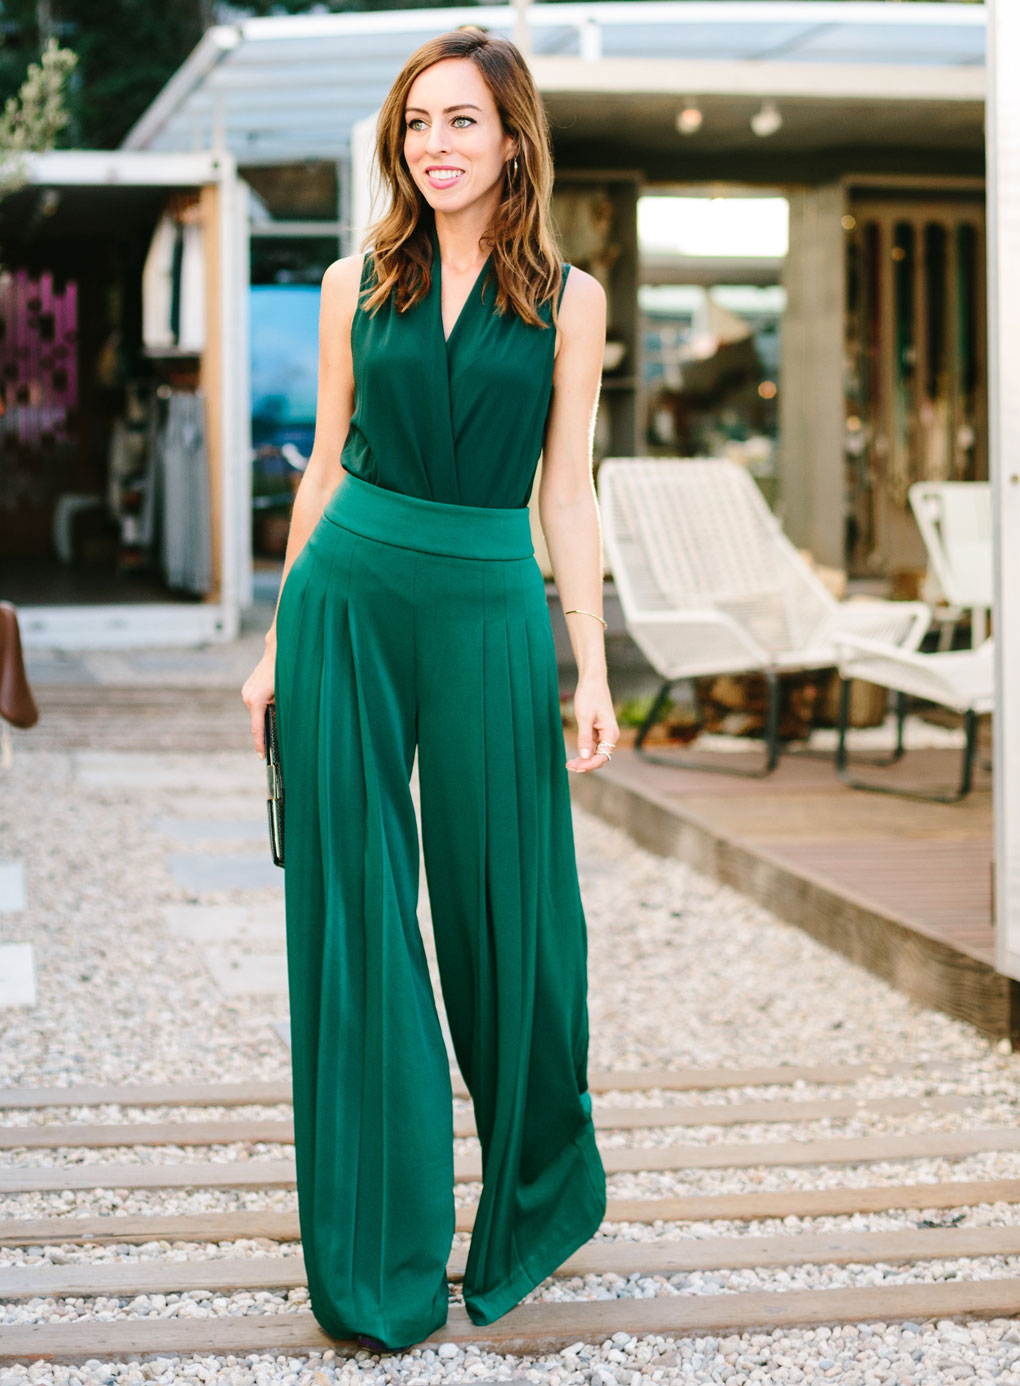 What to wear with green pants